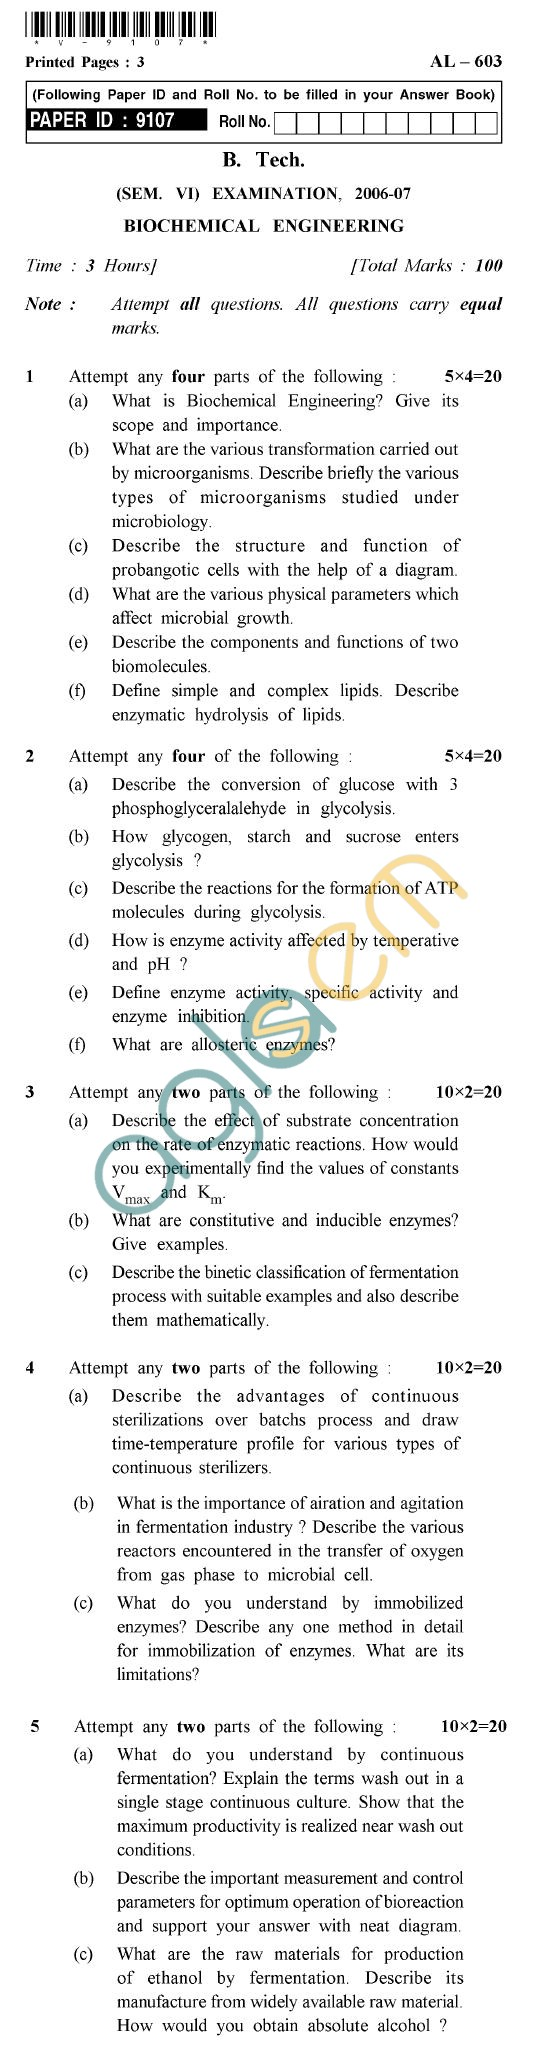 UPTU B.Tech Question Papers - AL-603 - Biochemical Engineering